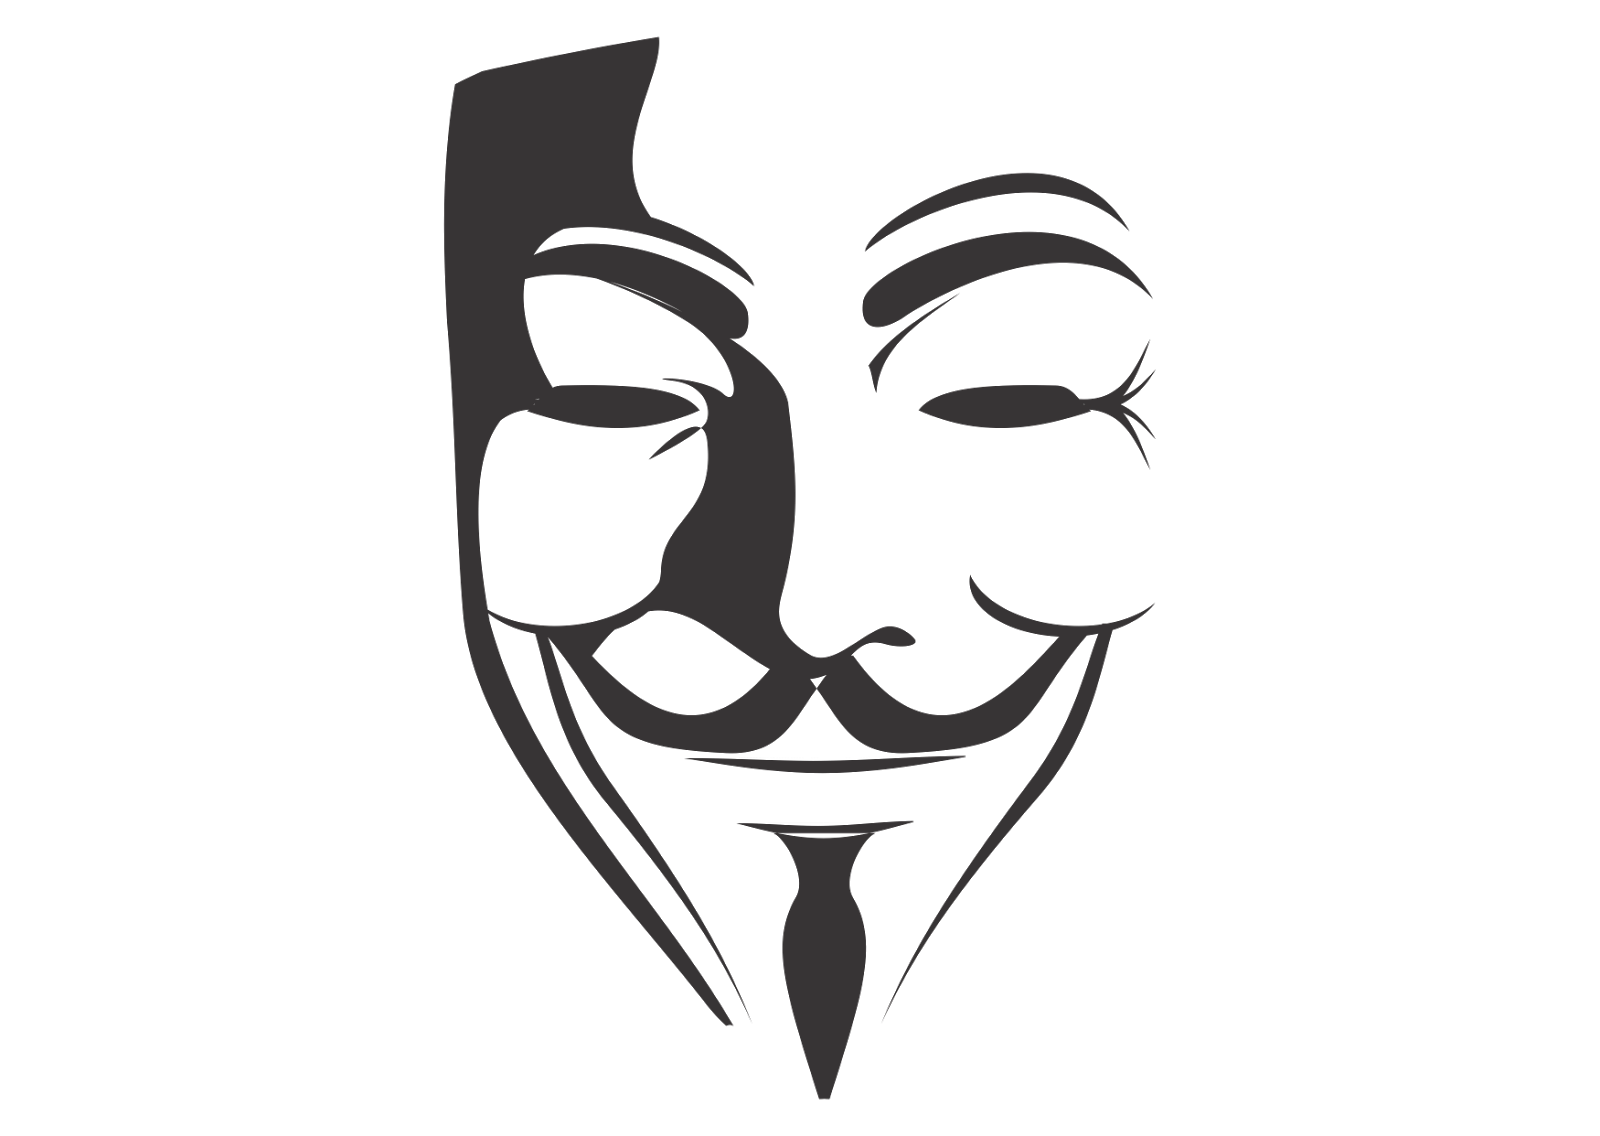 V for Vendetta Logo Vector~ Format Cdr, Ai, Eps, Svg, PDF, PNG